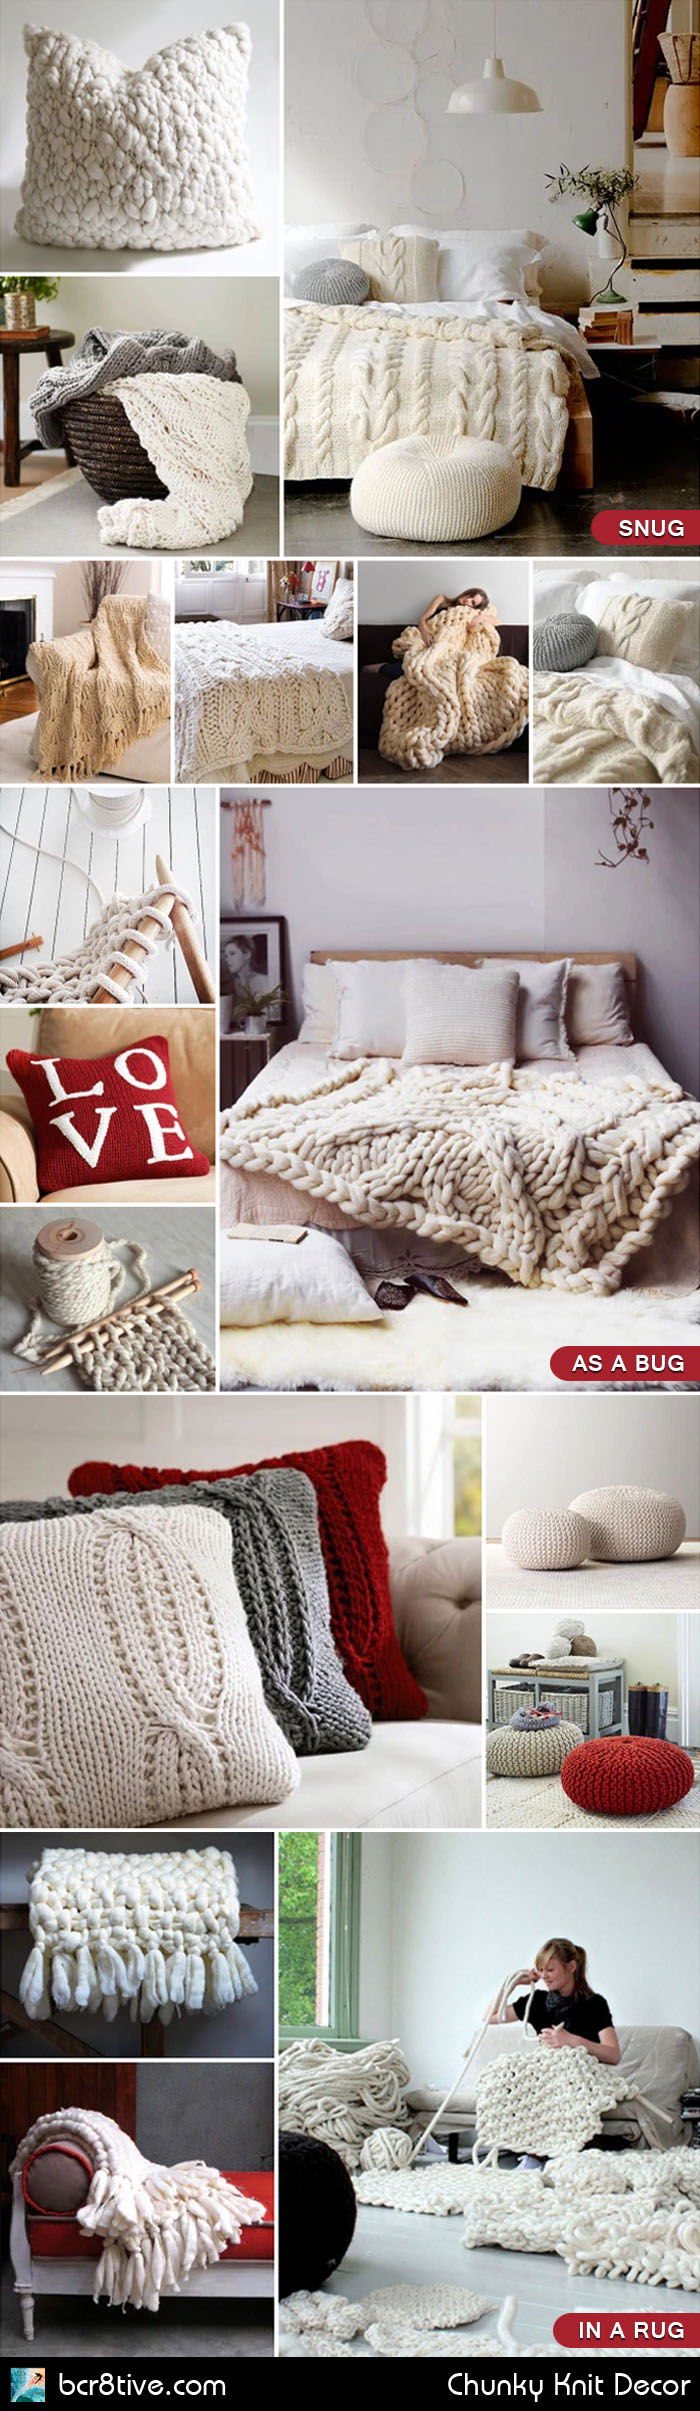 Chunky Knit Decor on bcr8tive.com